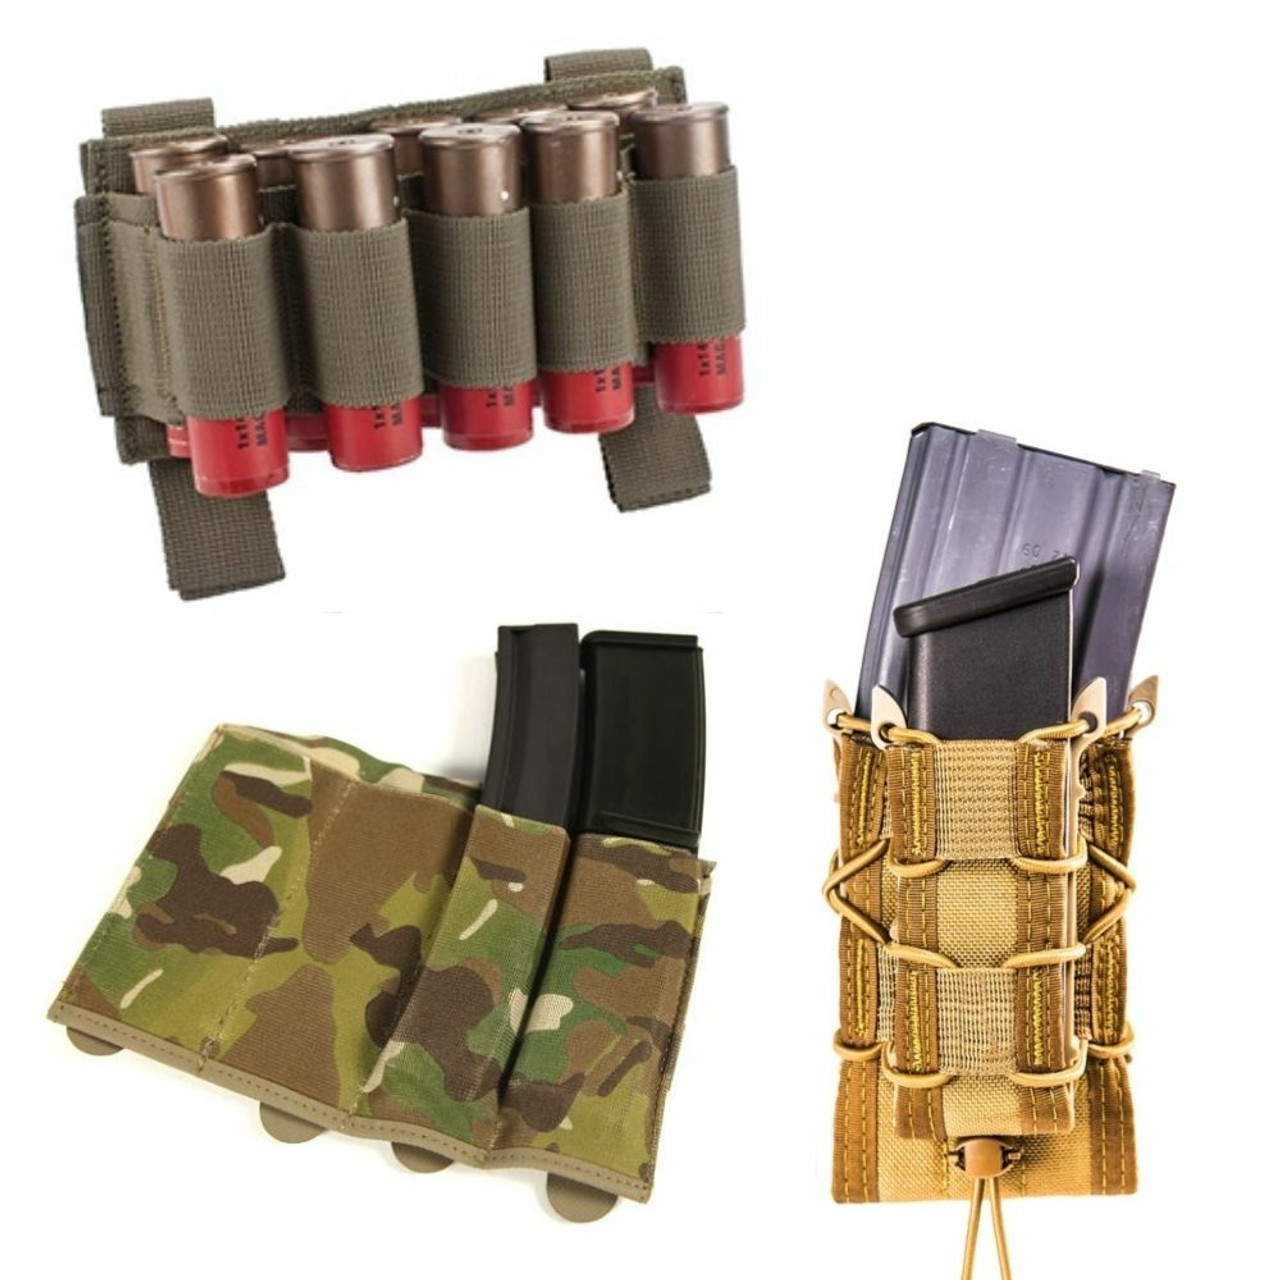 Tactical Gear Magazine / Ammo Pouches